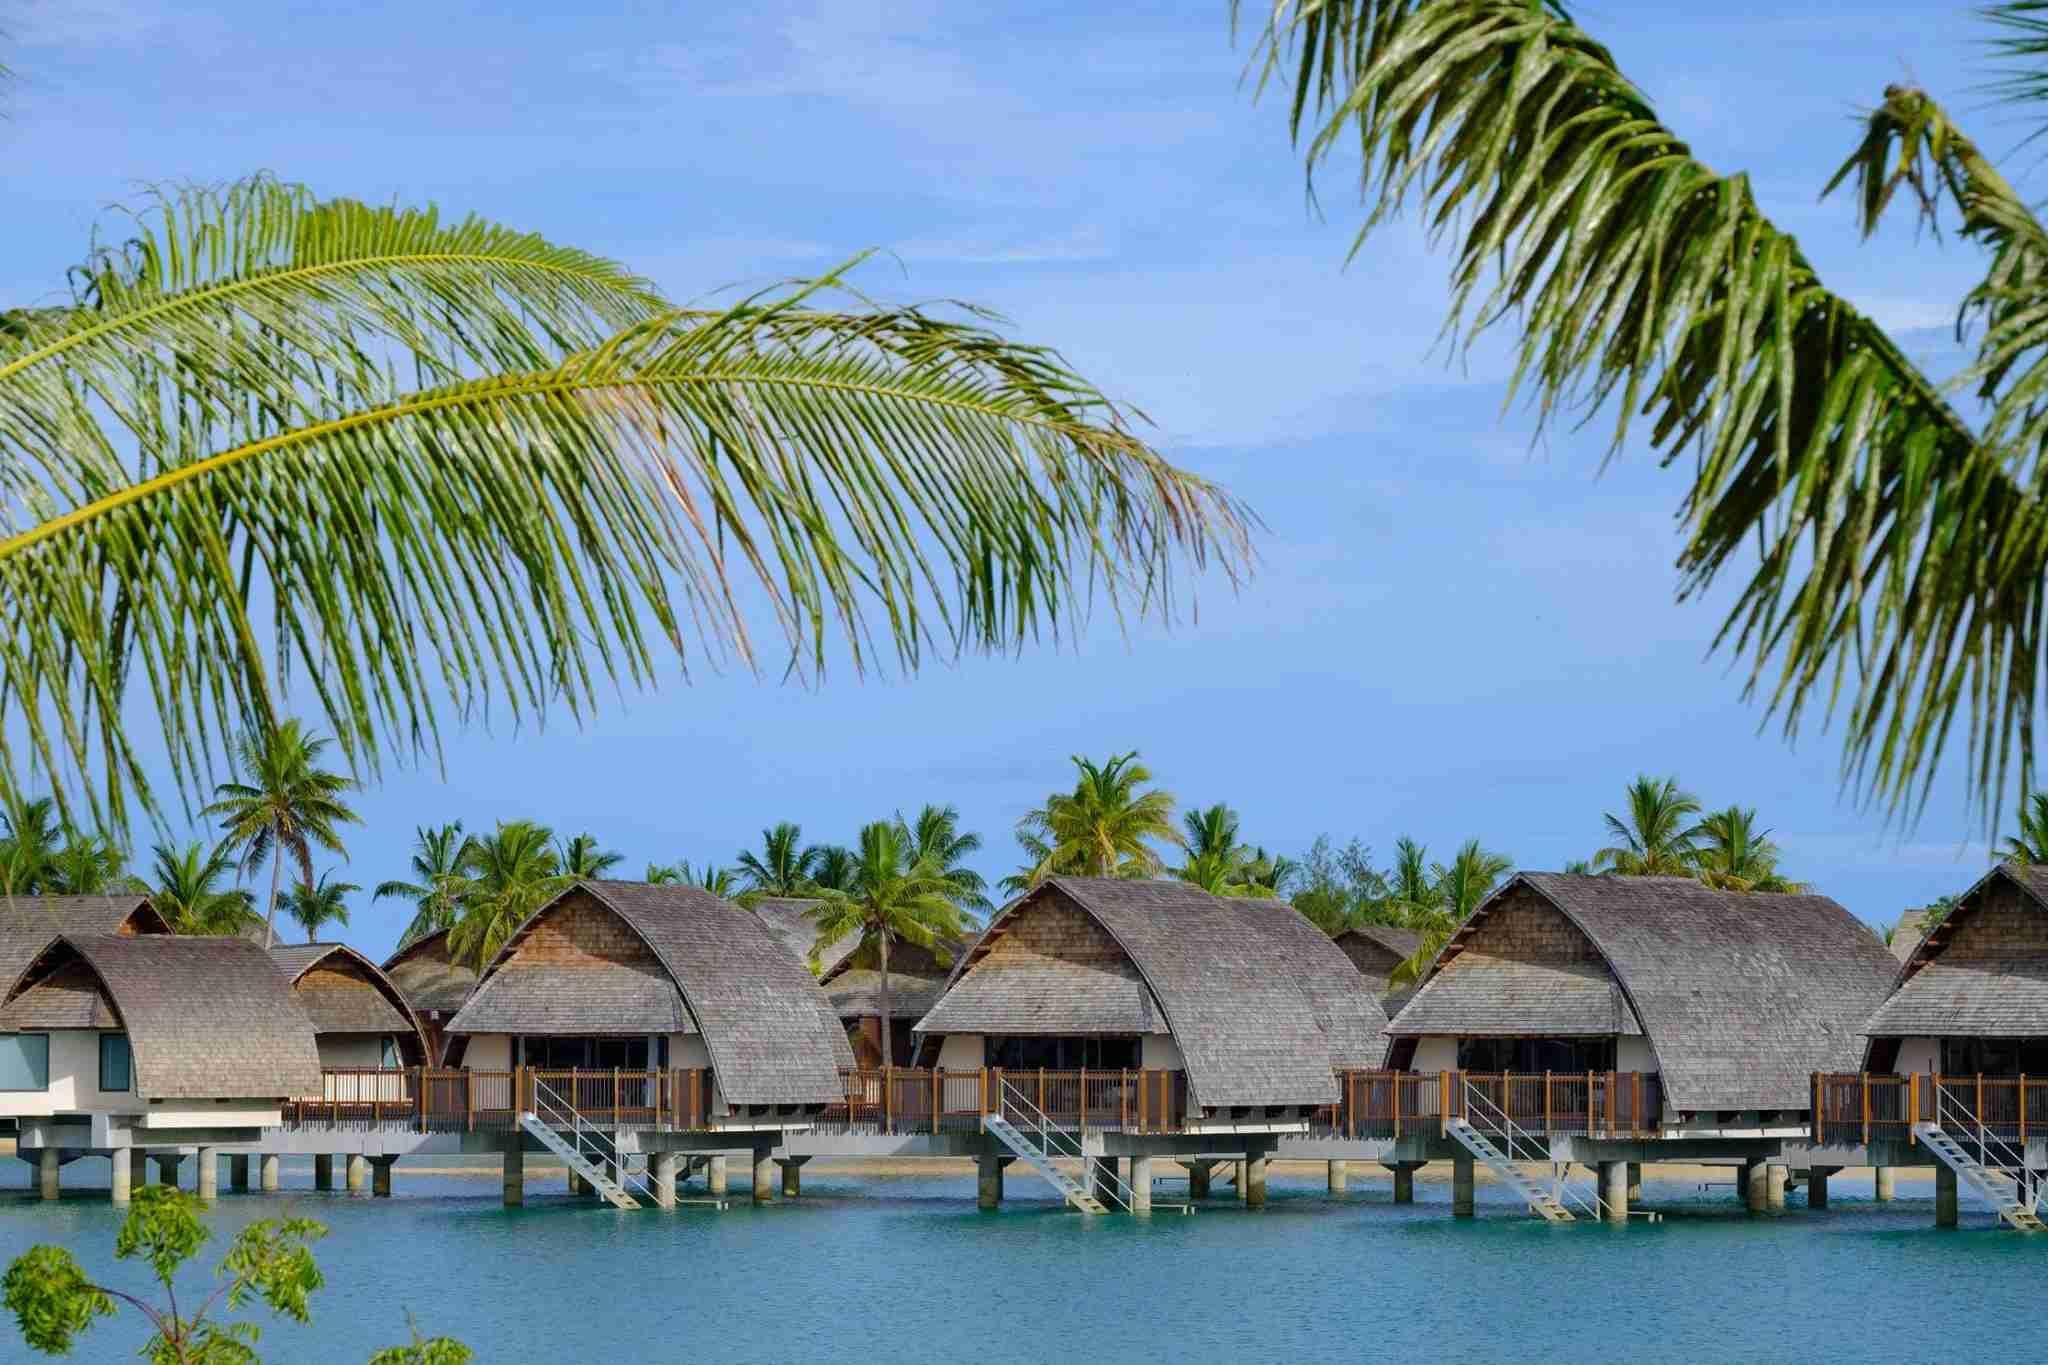 Image courtesy of Fiji Marriott Resort Momi Bay